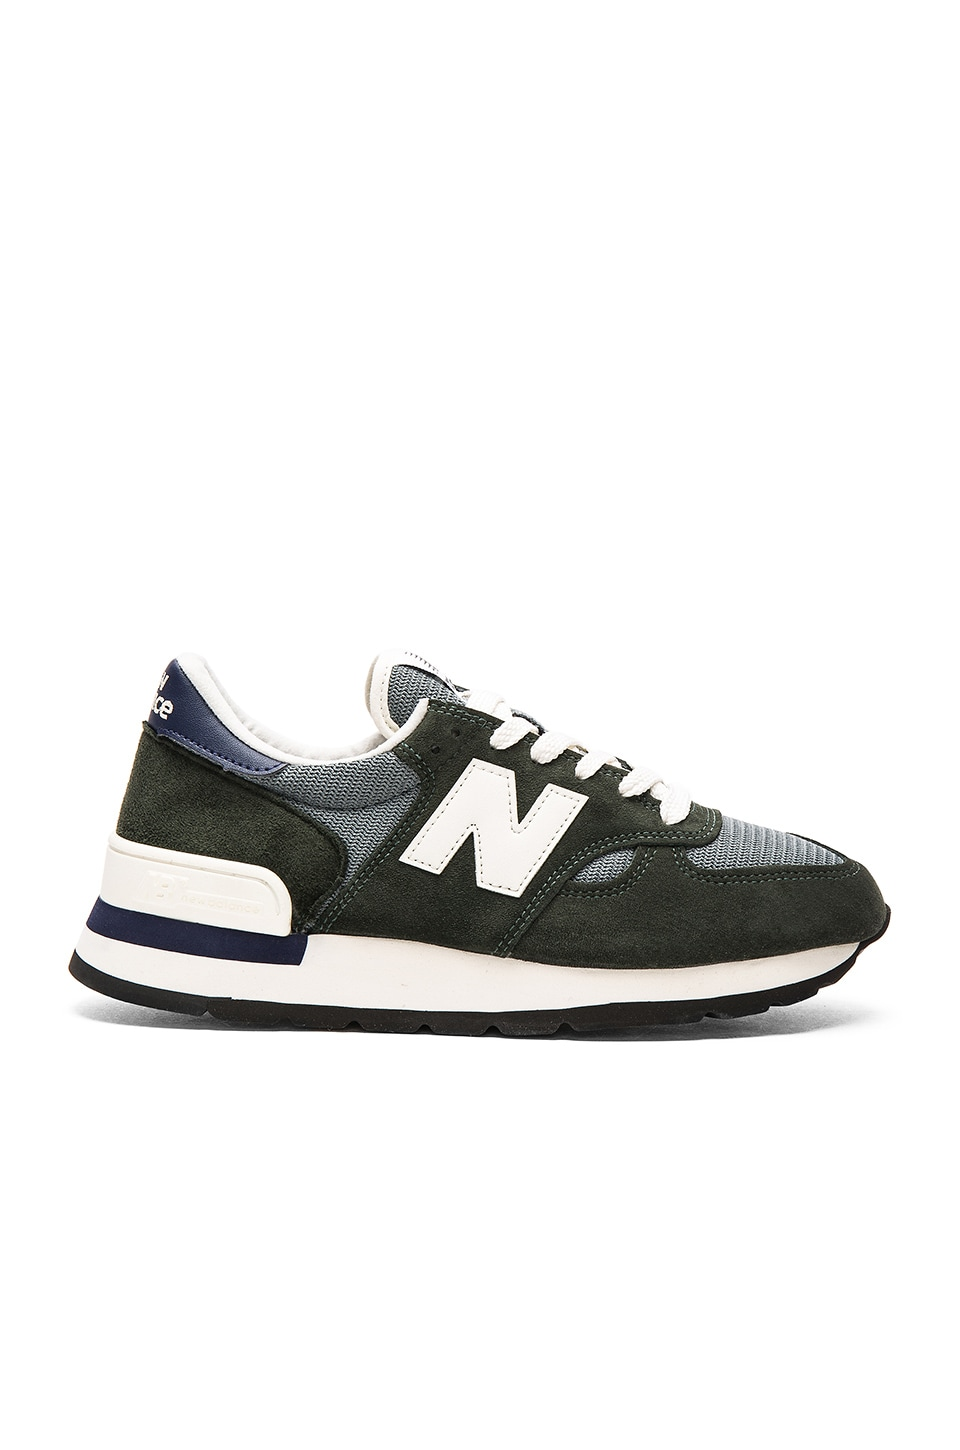 New Balance Made in USA M990 in Green Navy